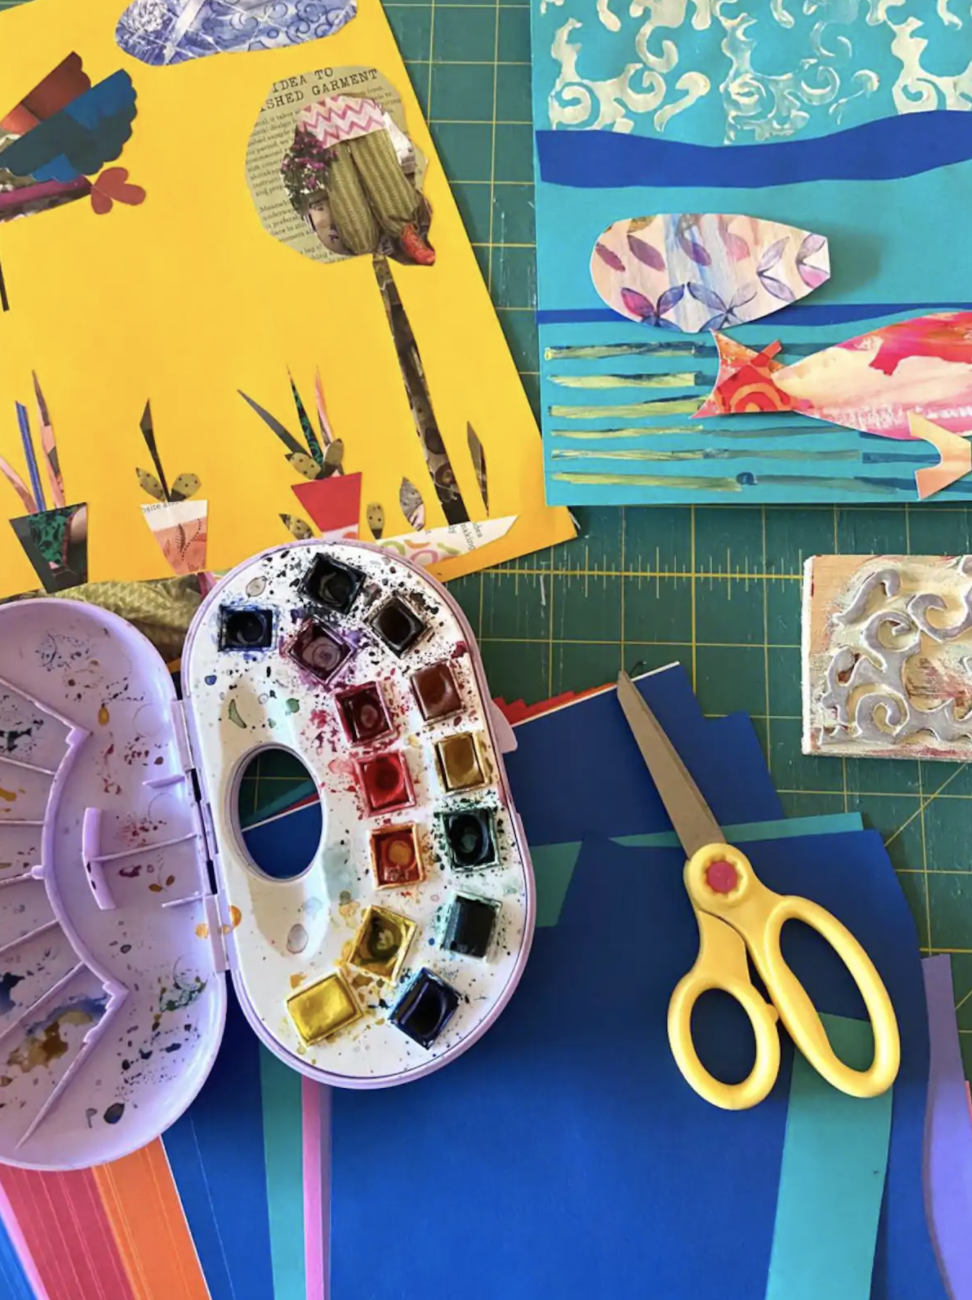 A top down shot of a table covered with colorful paper, scraps of paper material, scissors, and a used paint palette